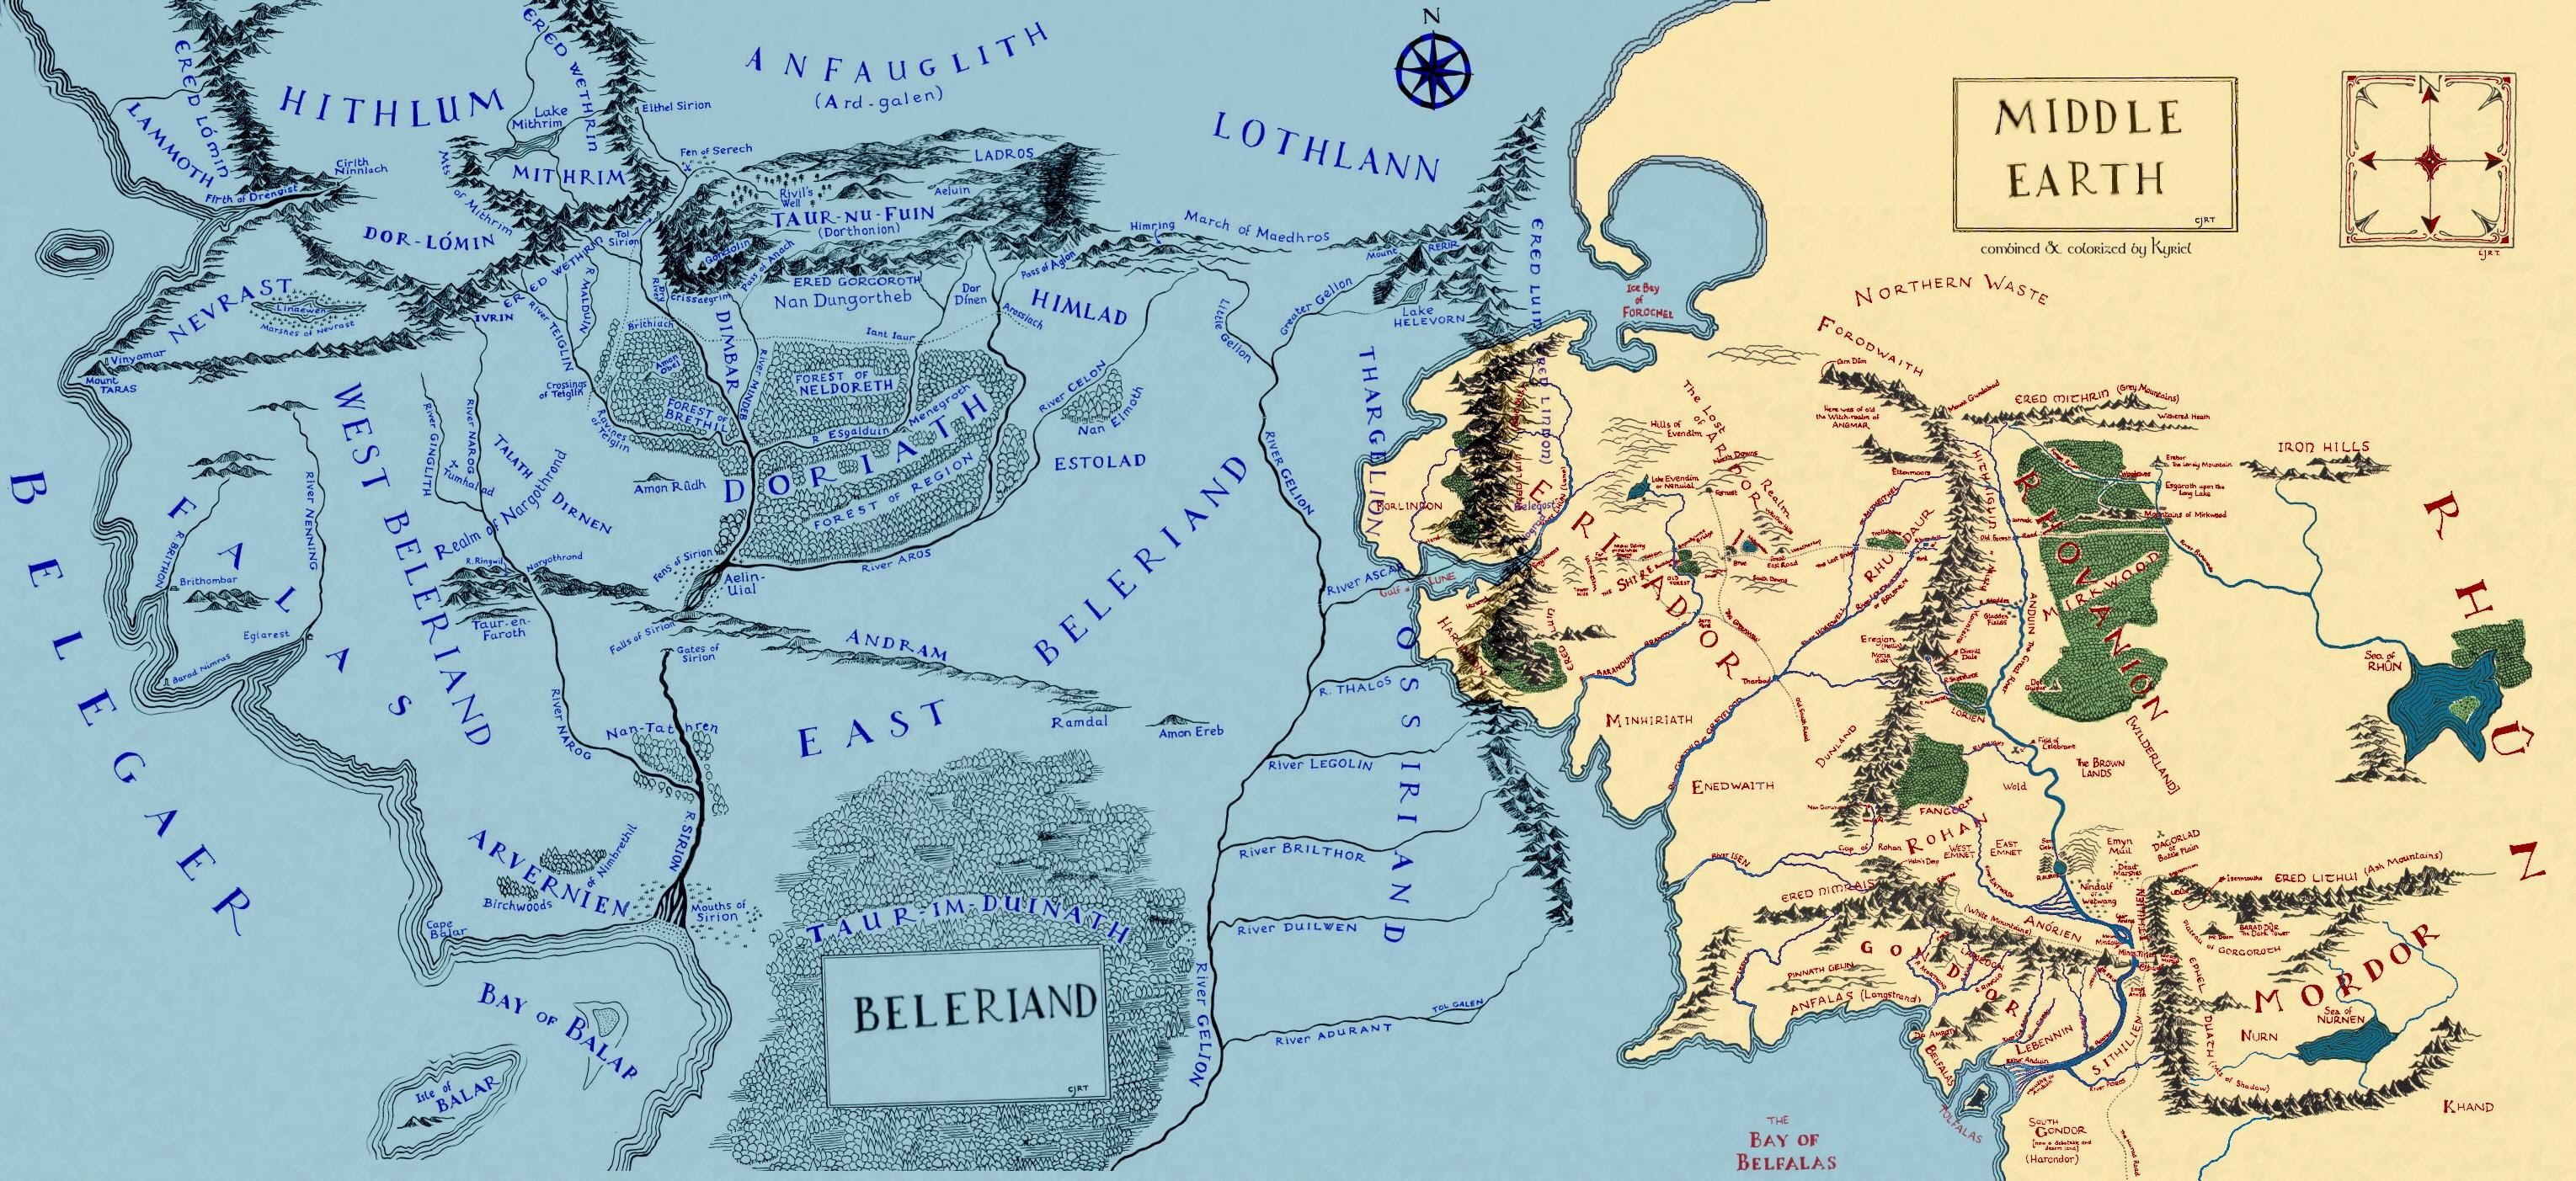 Mapa Tierra Media Hd.Middle Earth And Beleriand Hobbit Lotr Middleearth Map